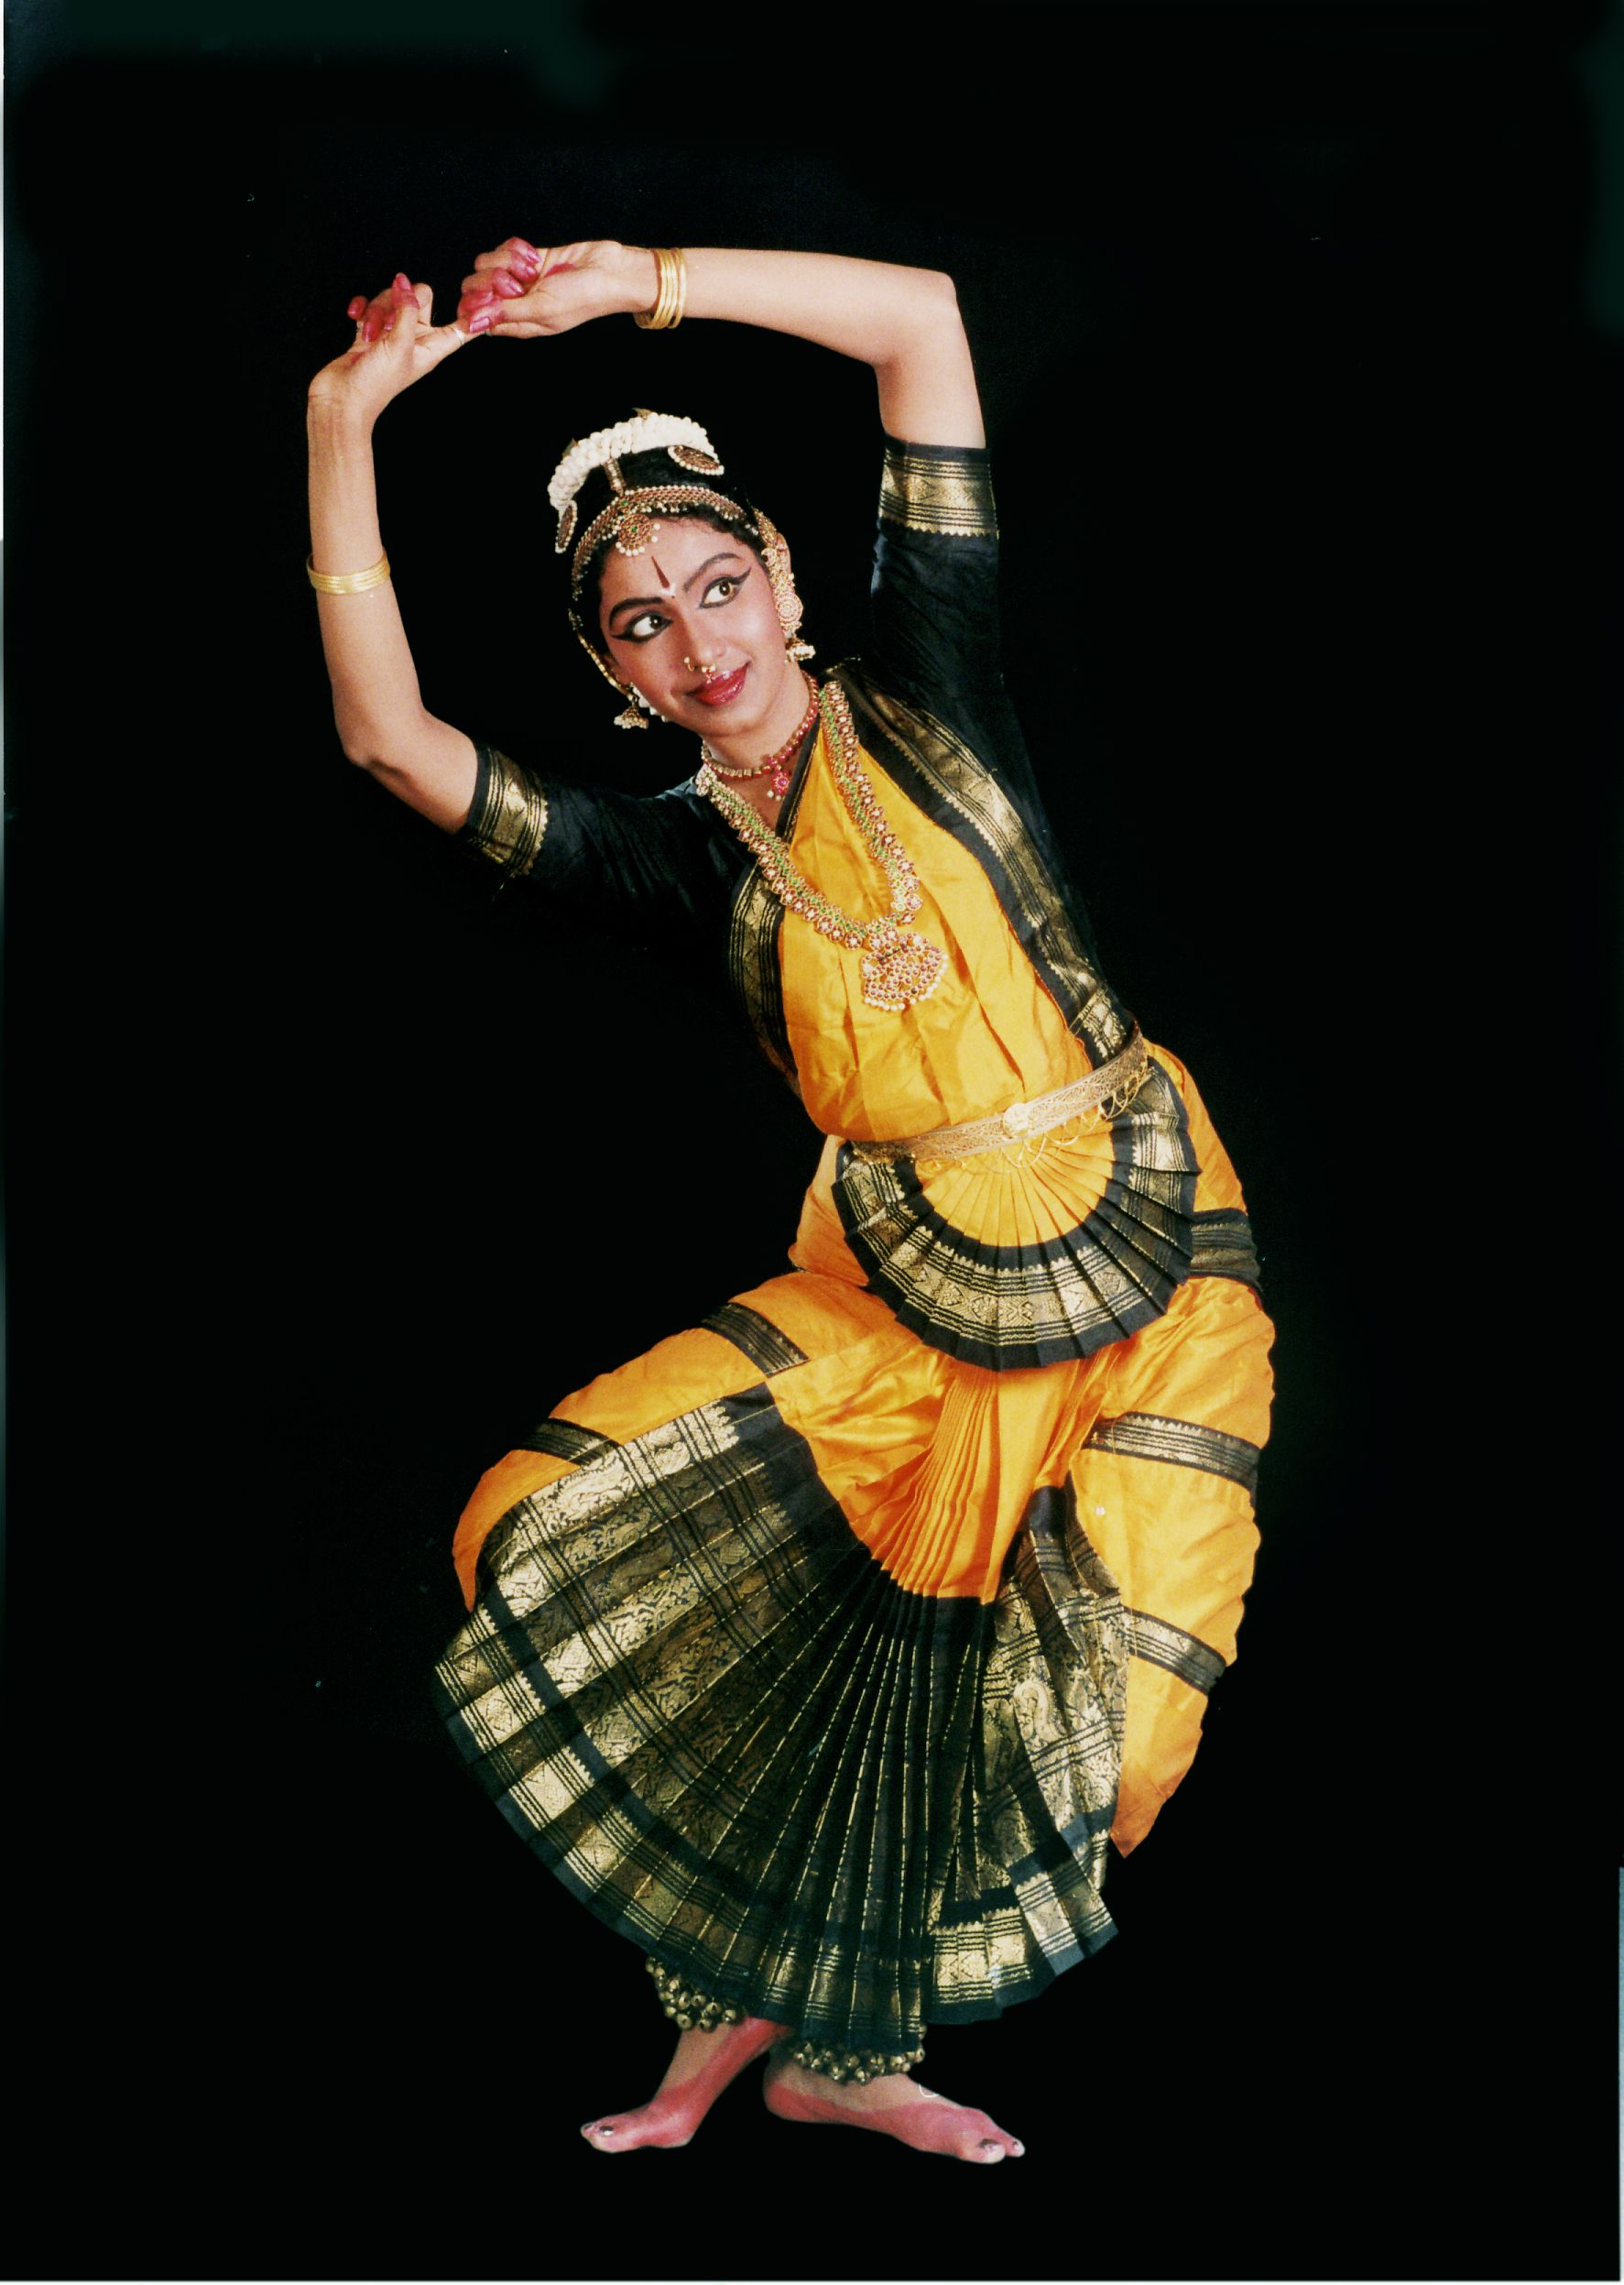 essay on classical dances of india Indian music has essentially been known to be performed through three modes : vocal music, instrumental music, and dance all the three mediums of music are prevalent in the two prominent kinds of indian classical music, namely the north indian classical music or the hindustani classical music, and the classical music of south india or the.